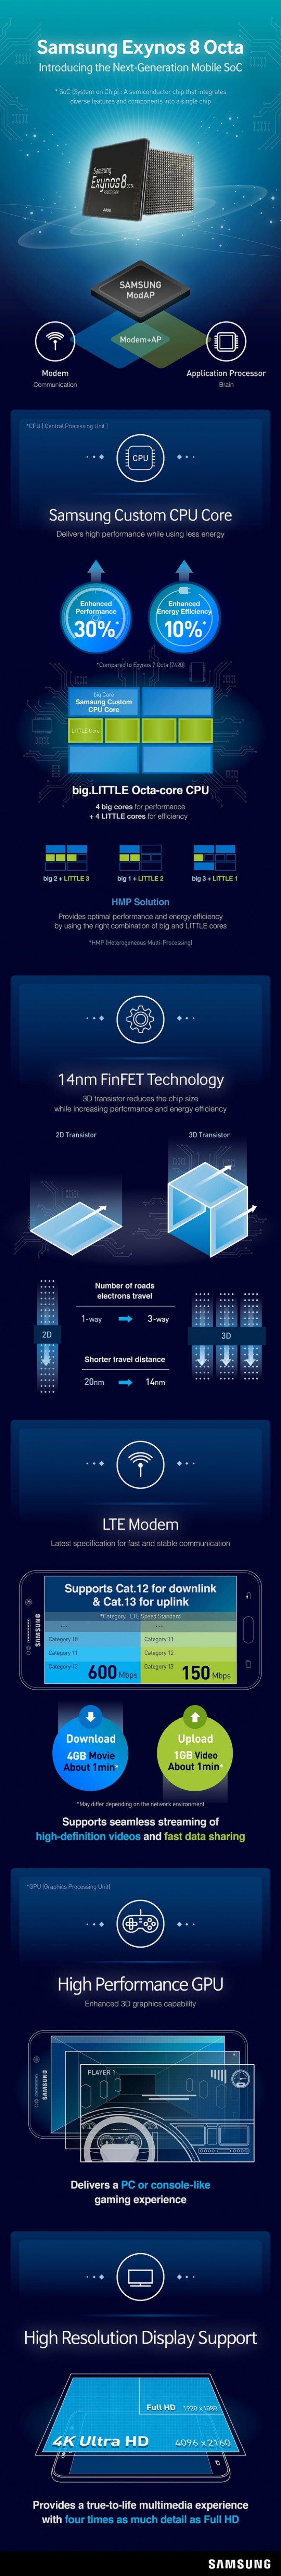 Exynos 8890 chipset infographic